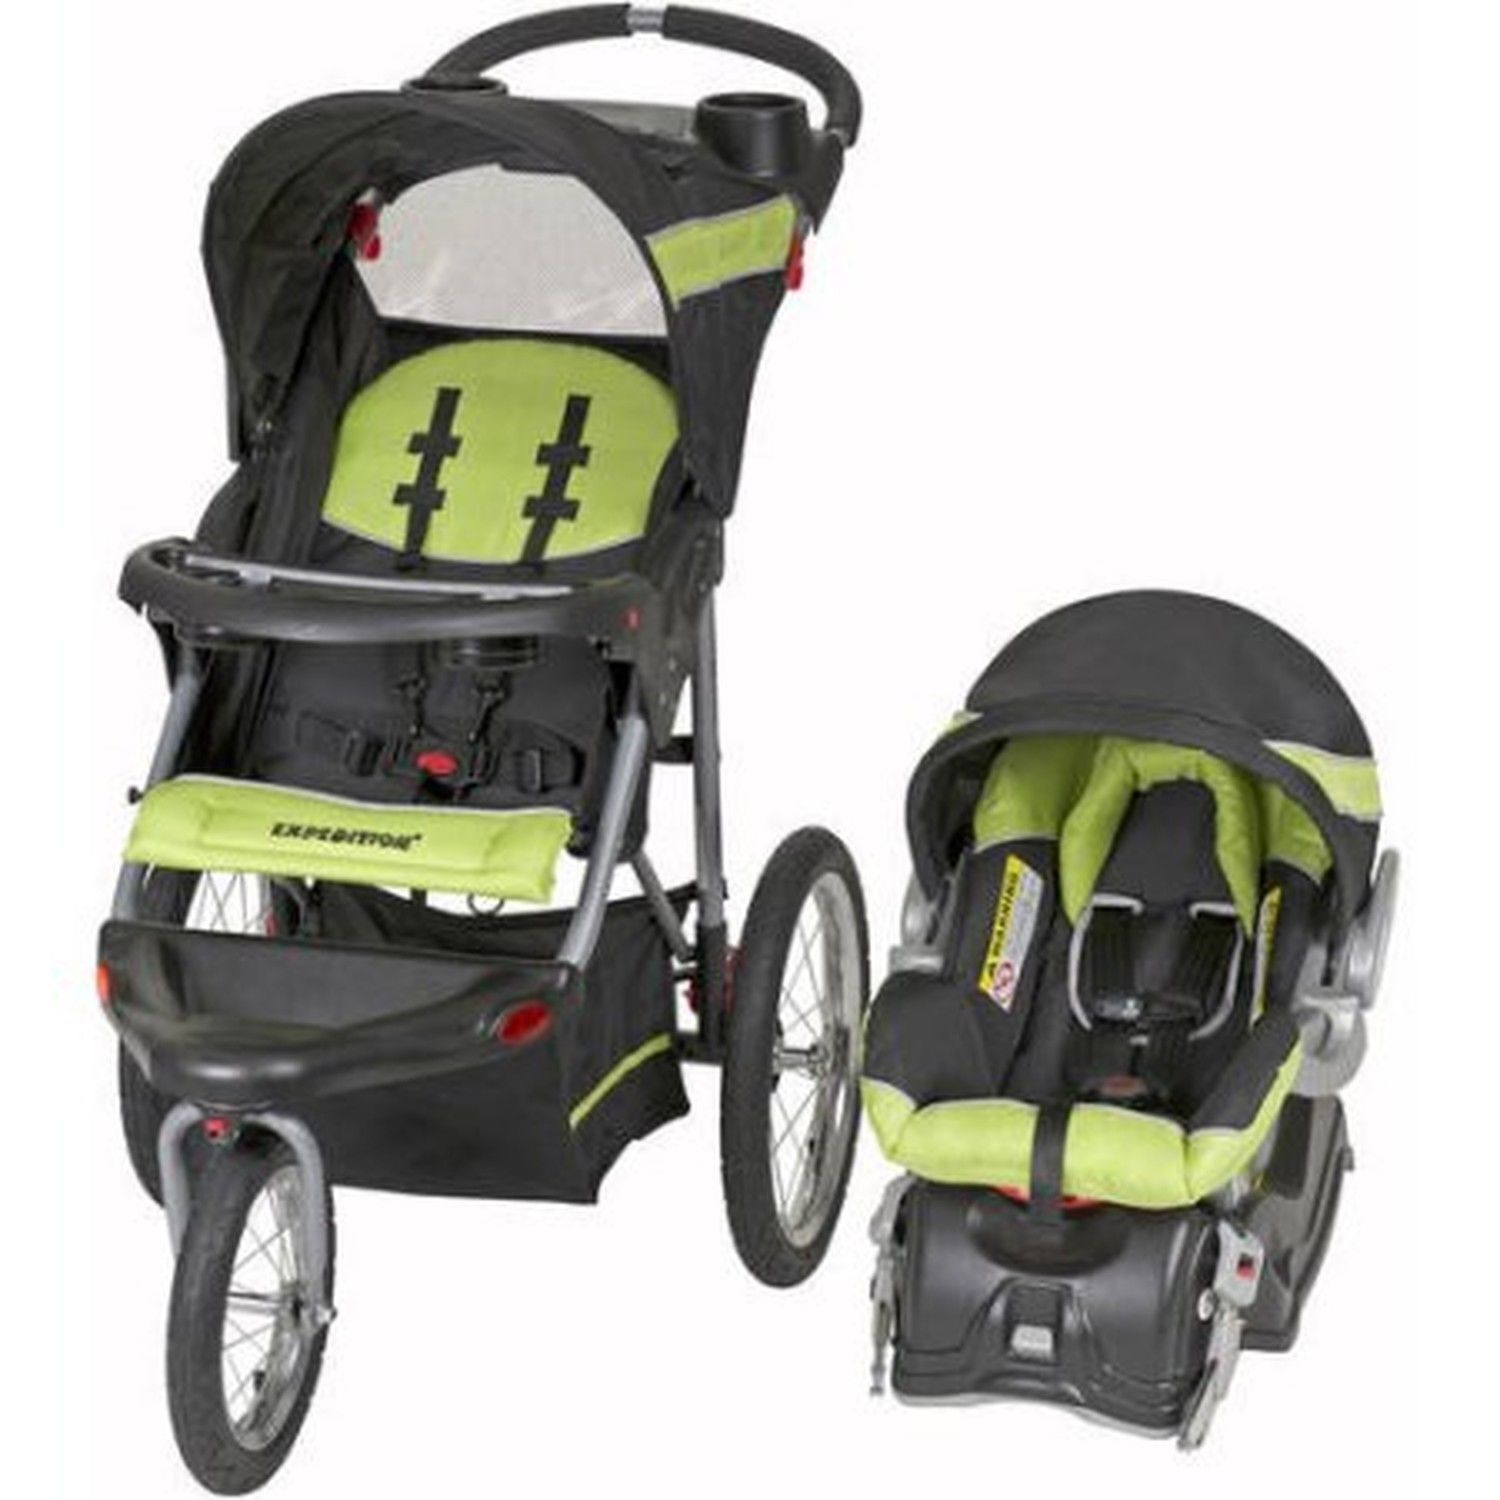 Изображение товара Baby Trend Expedition Jogger Travel System 3in1 Stroller Car Seat Electric Lime